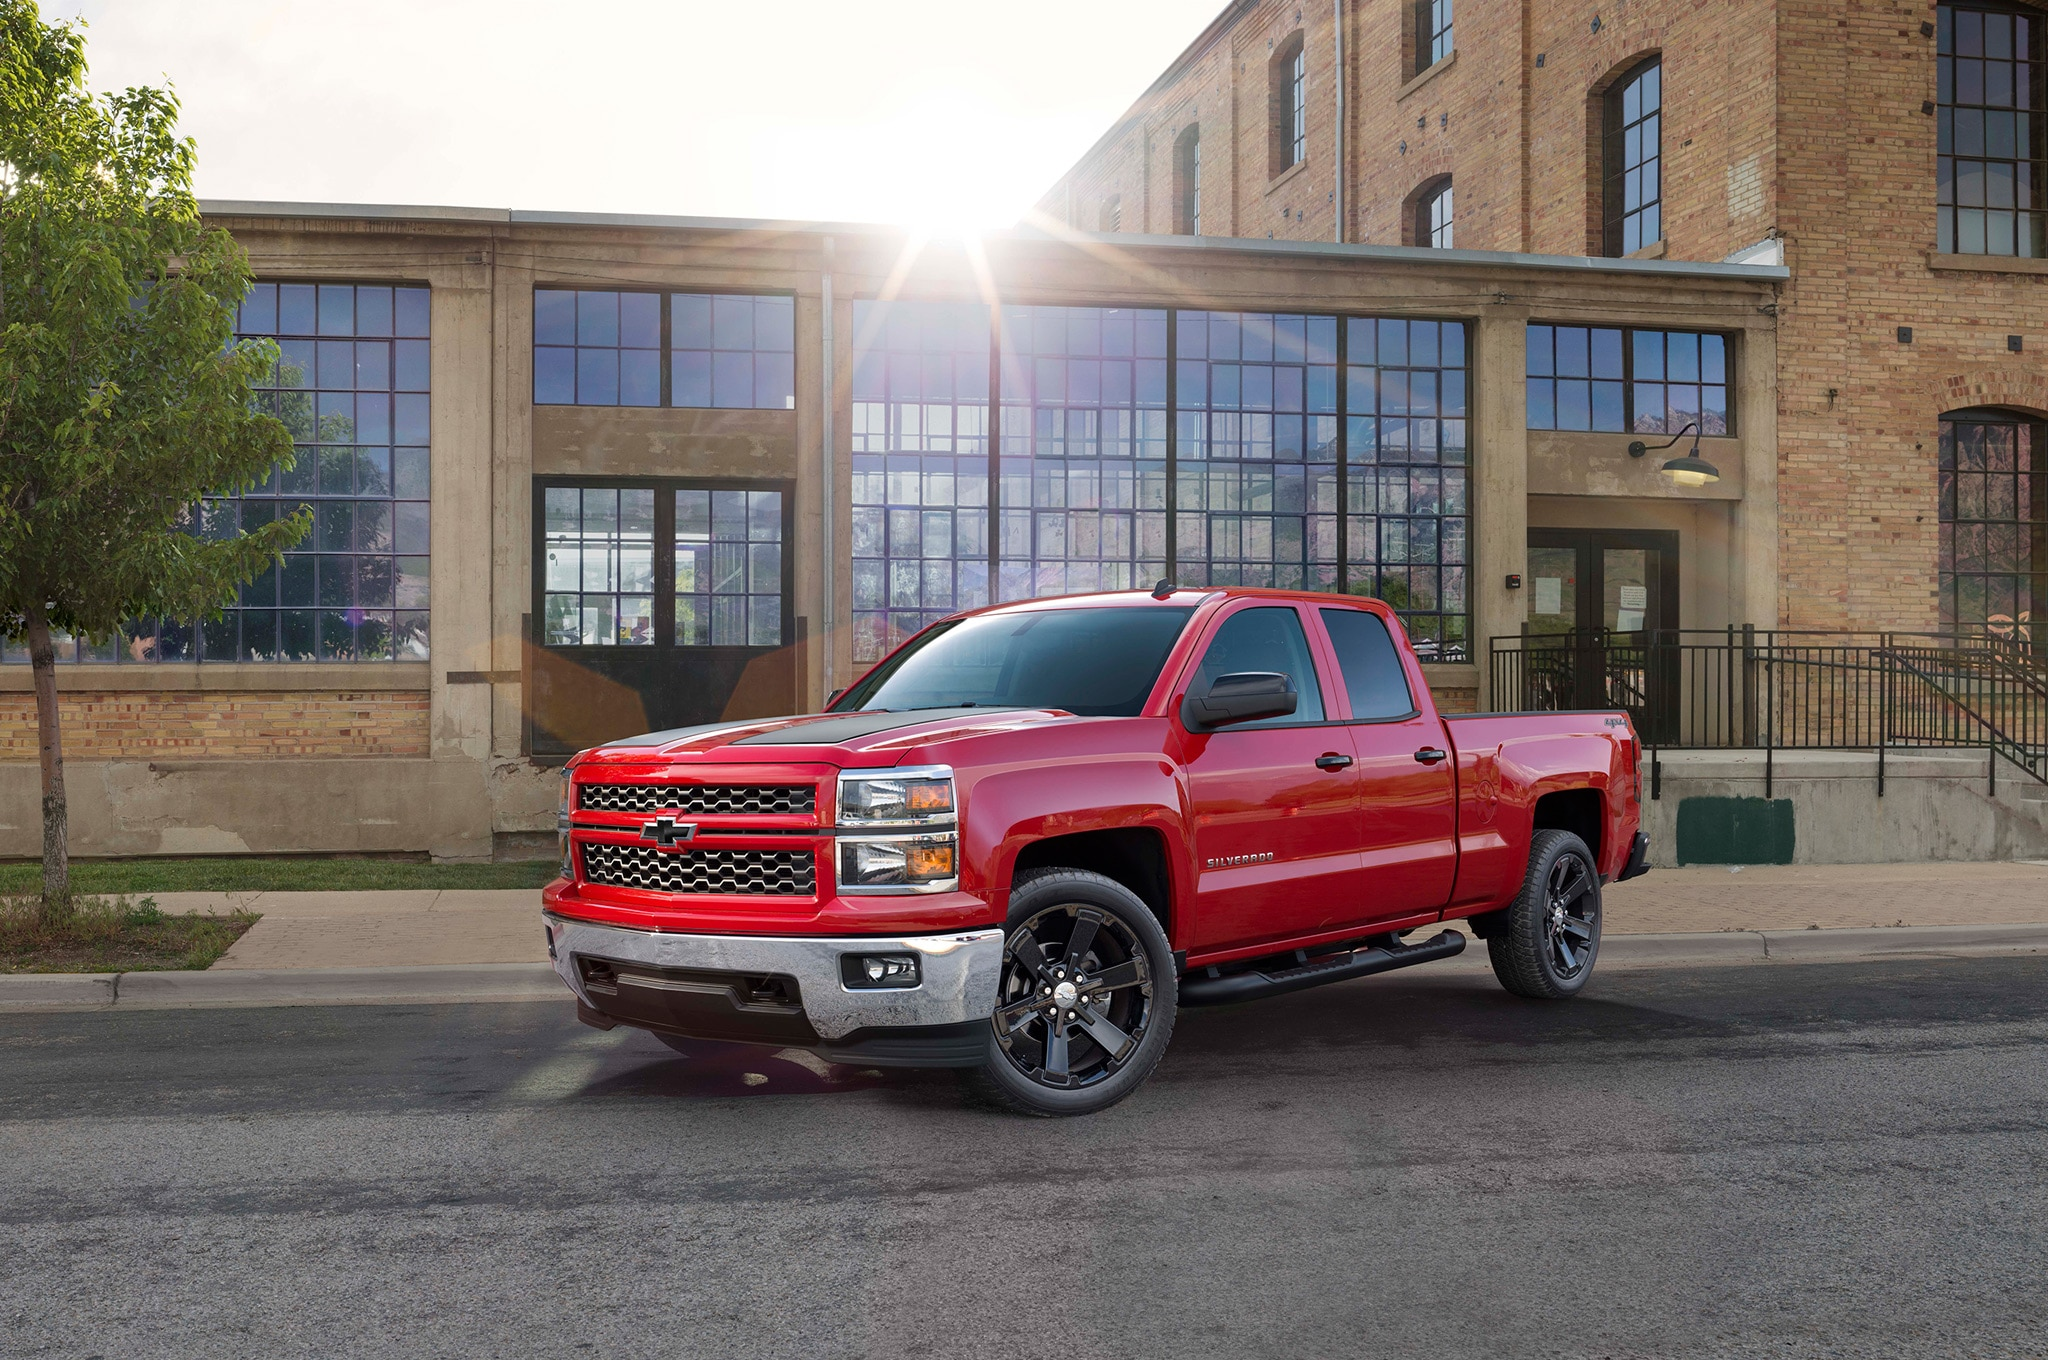 2015 Chevrolet Silverado 1500 Rally Edition Front Side View Wide Shot1